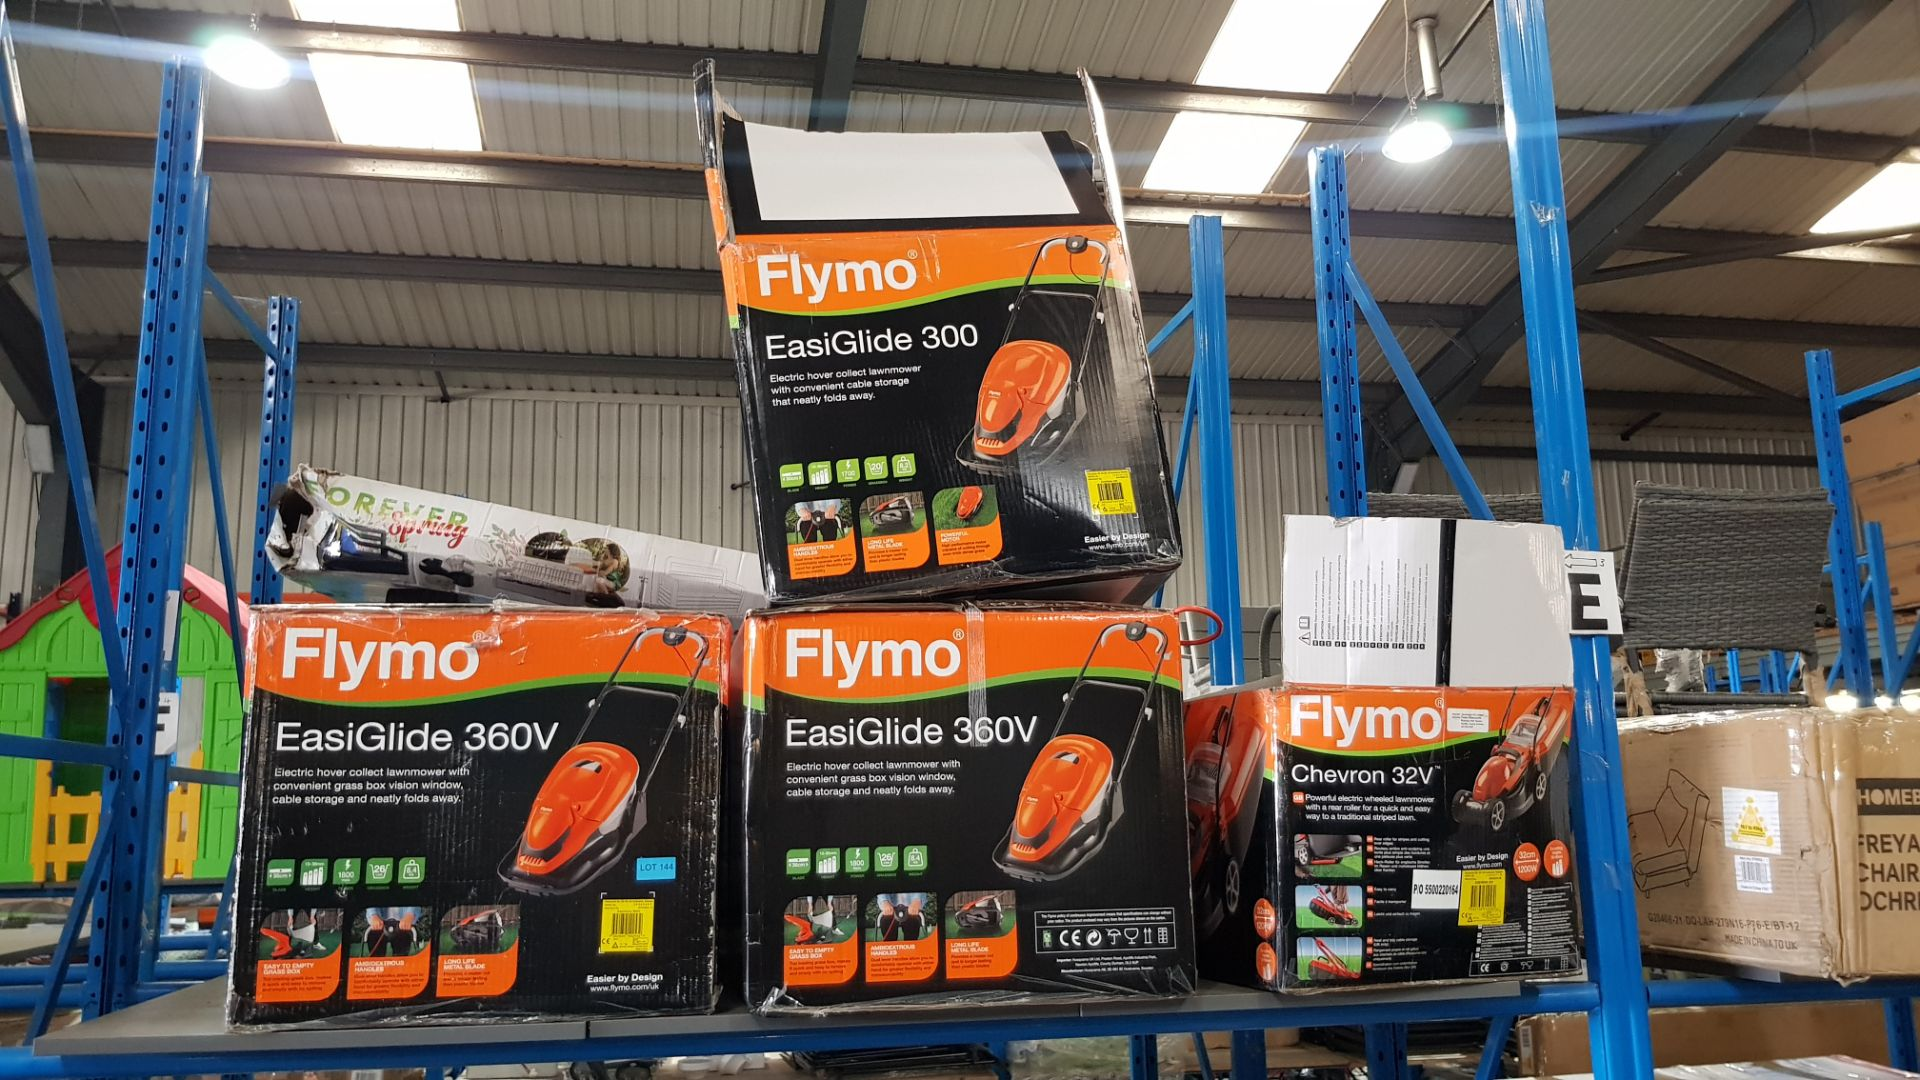 (3E) 4x Flymo Items. 3x EasiGlide 360V Electric Hover Collect Lawnmower. 1x Chevron 32V Electric Wh - Image 3 of 3